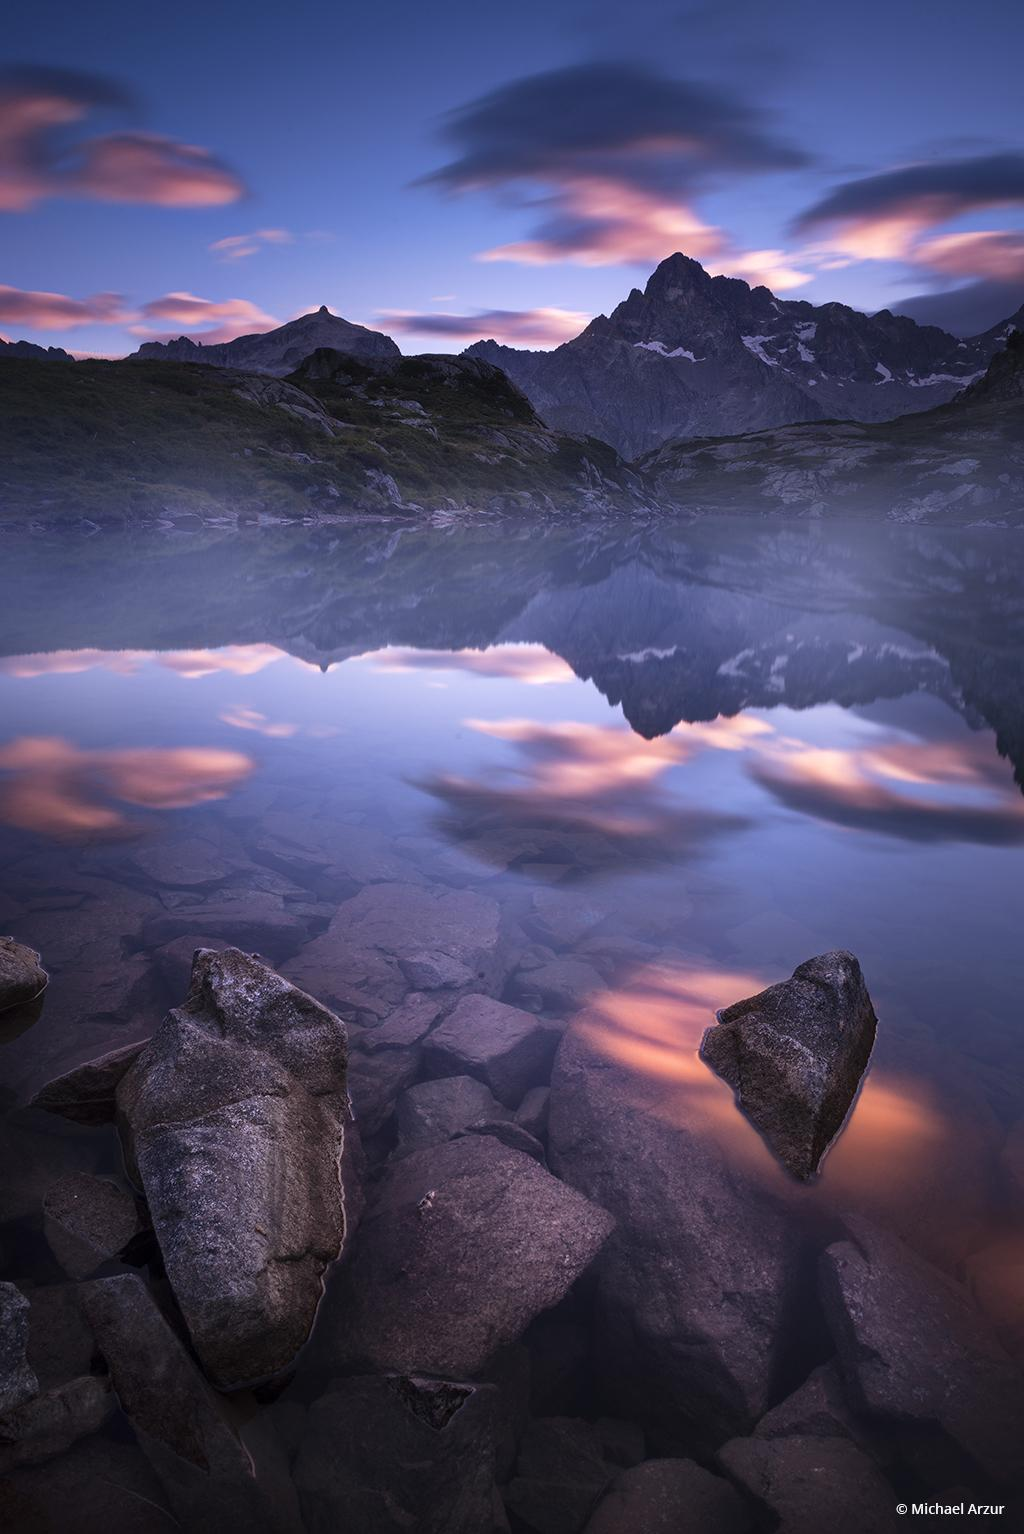 """Today's Photo Of The Day is """"Sunrise at Pétarel Lake"""" by Michael Arzur. Location: Pétarel Lake, French Alps."""